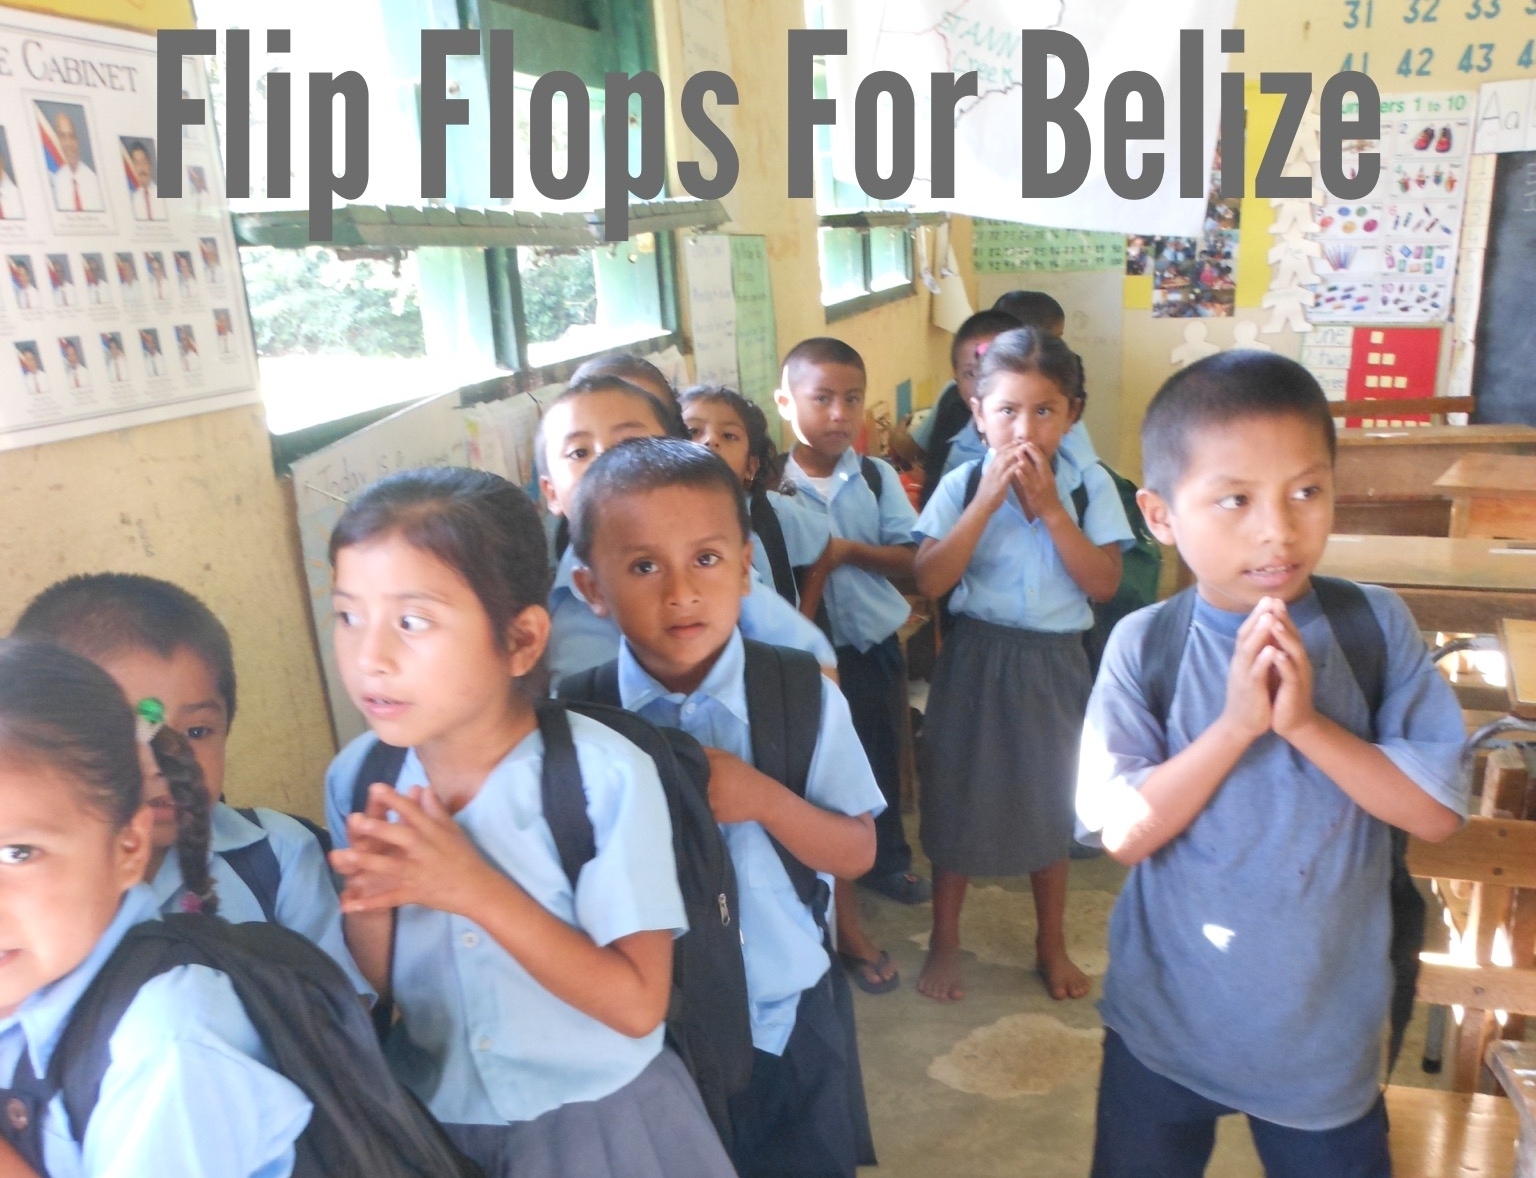 In January 2016, we were able to share flip-flops with the school children in blue creek, corazon creek, otoxha and san lucas in southwestern belize as part of a mission partnership with the all saints parish mission team.